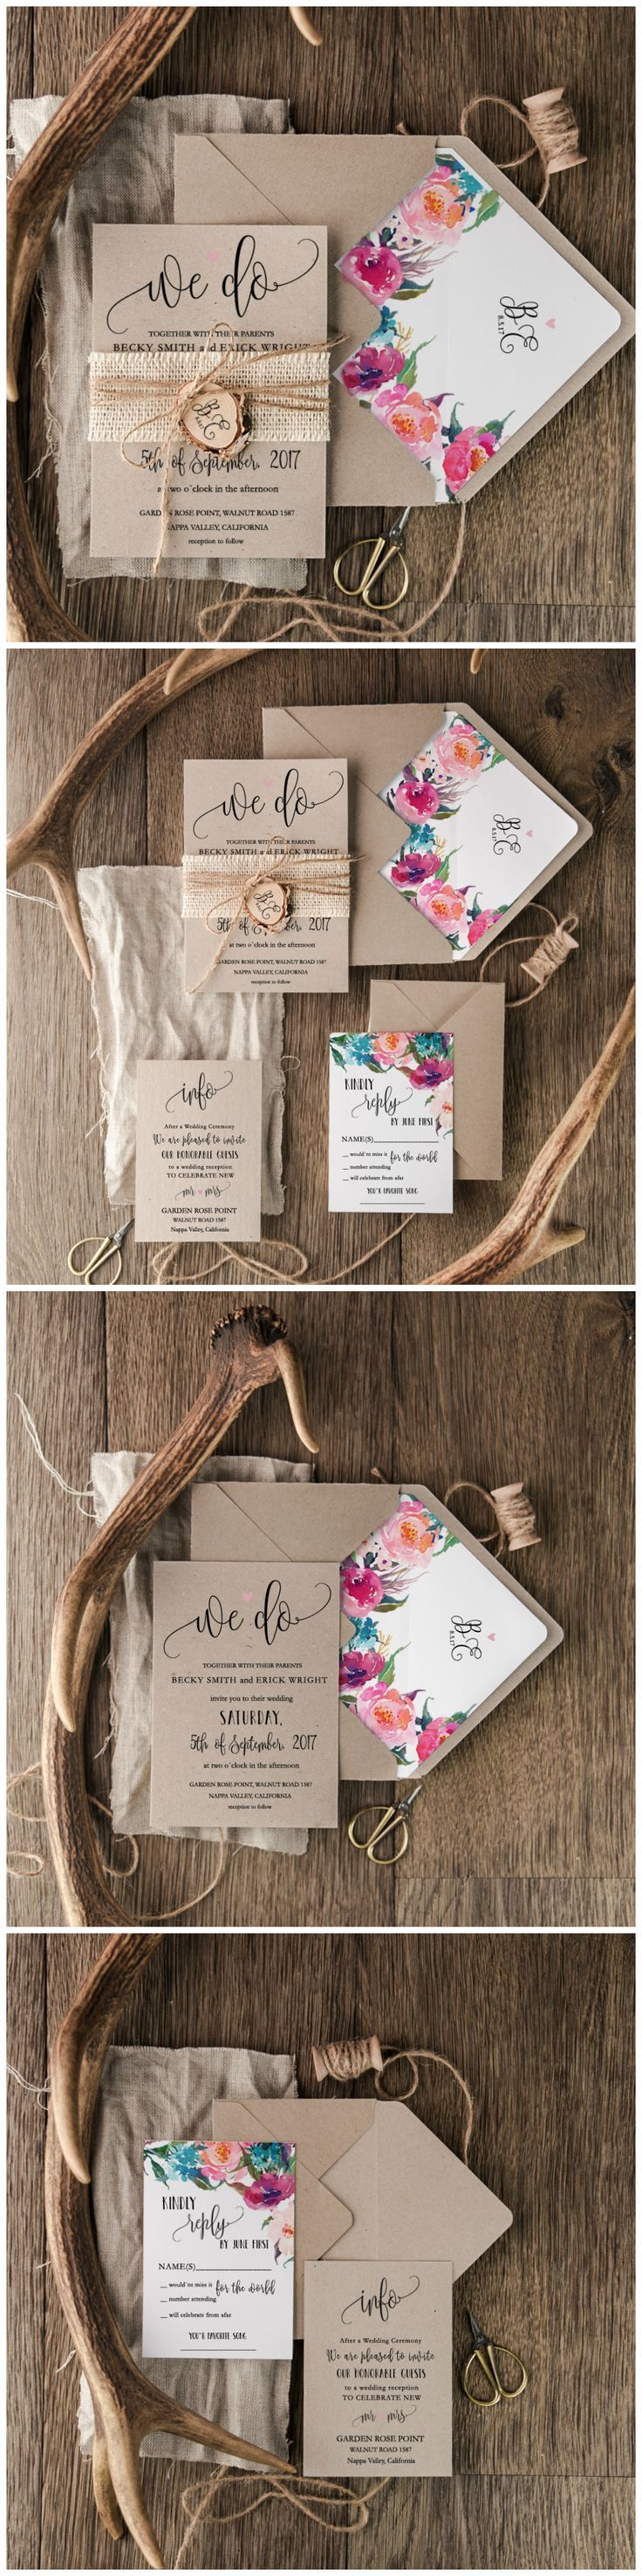 Boho Floral Eco Wedding Invitations - We Do ! Calligraphy printing #dpf #boho #floral #flowers #eco #ecofriendly #weddinginvitations